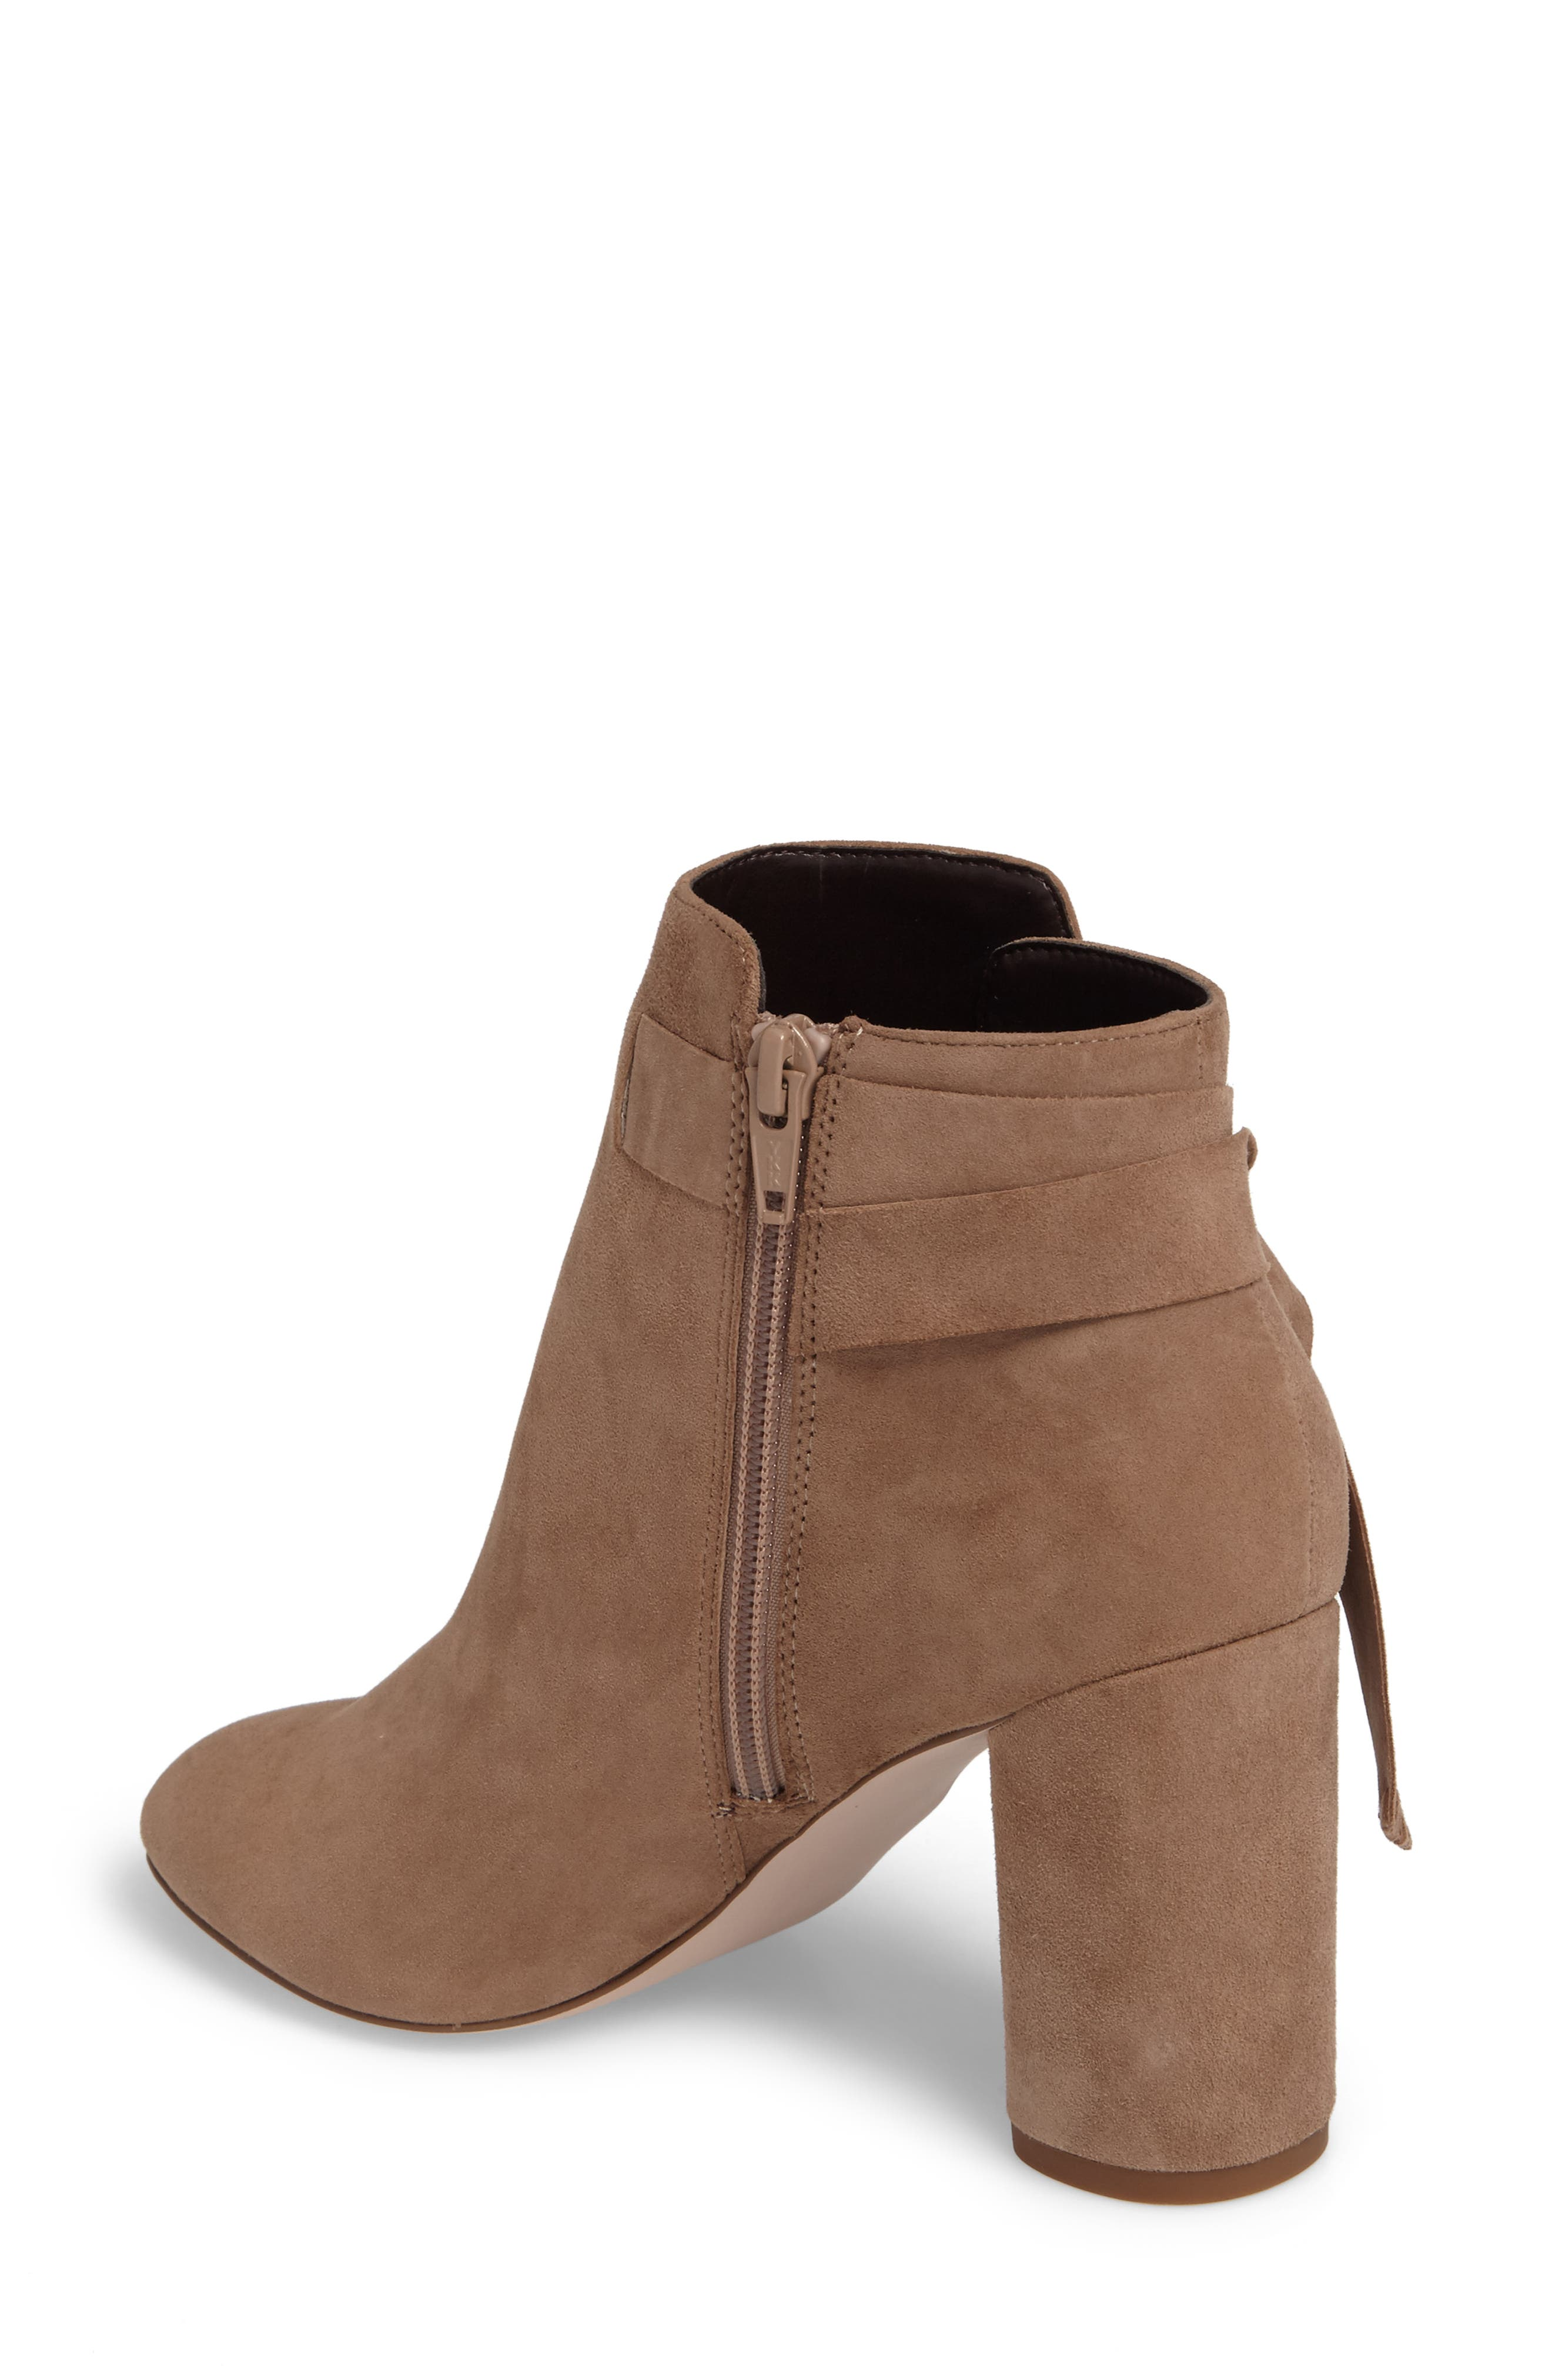 Zella Knotted Bootie,                             Alternate thumbnail 2, color,                             Taupe